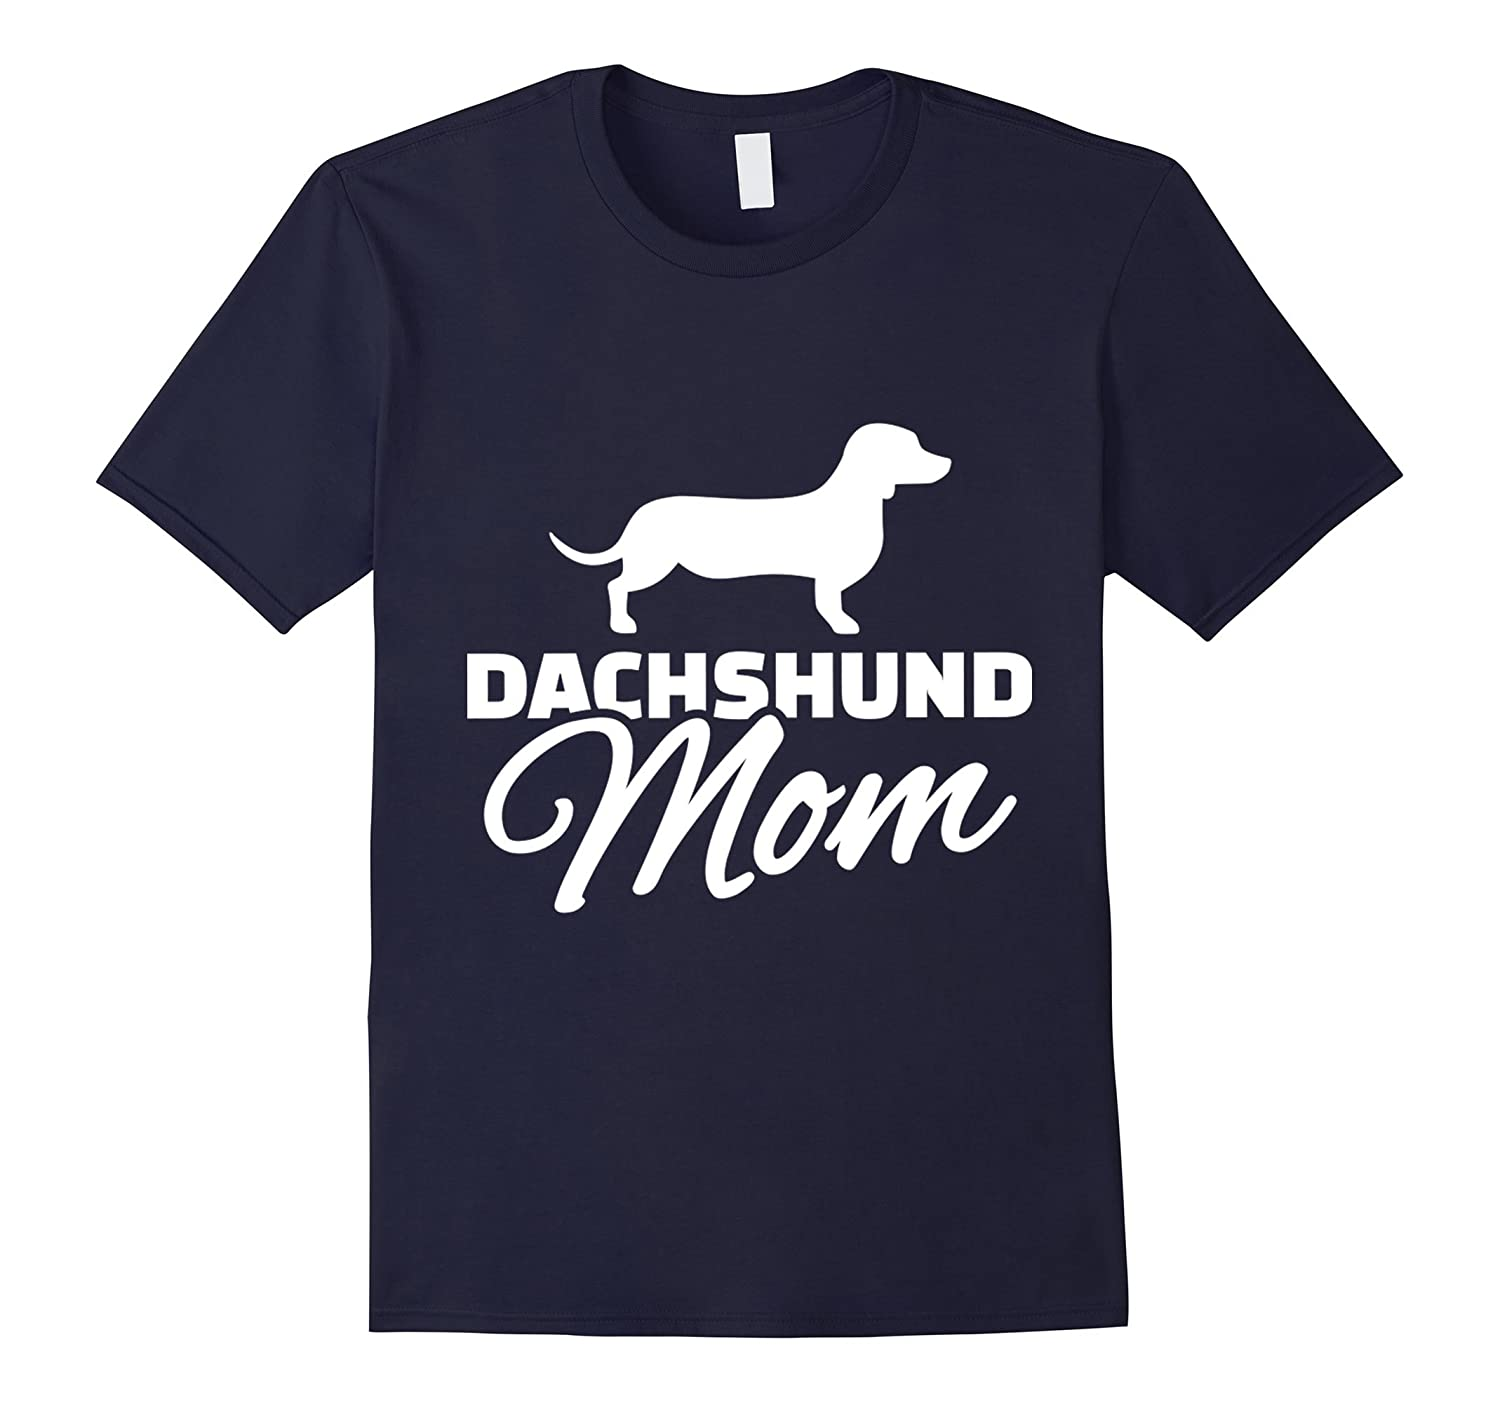 Dachshund Mom T Shirt, Women's Dachshund Mom T Shirt-CL